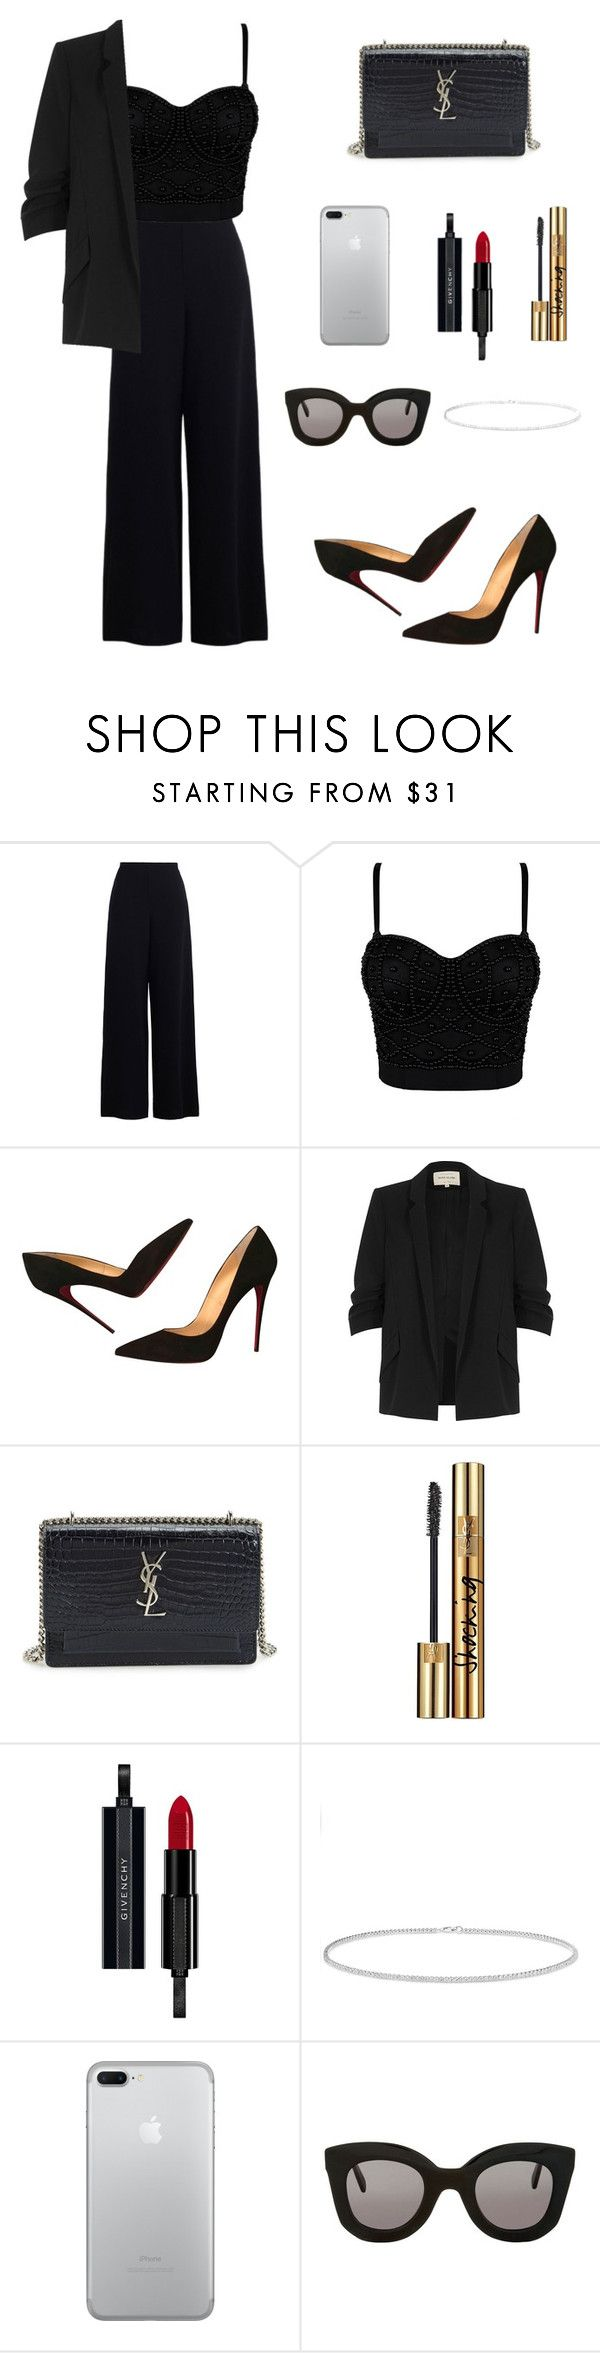 """Untitled #135"" by sonianguyen98 on Polyvore featuring Zimmermann, Christian Louboutin, River Island, Yves Saint Laurent, Givenchy, Anne Sisteron and CÉLINE"